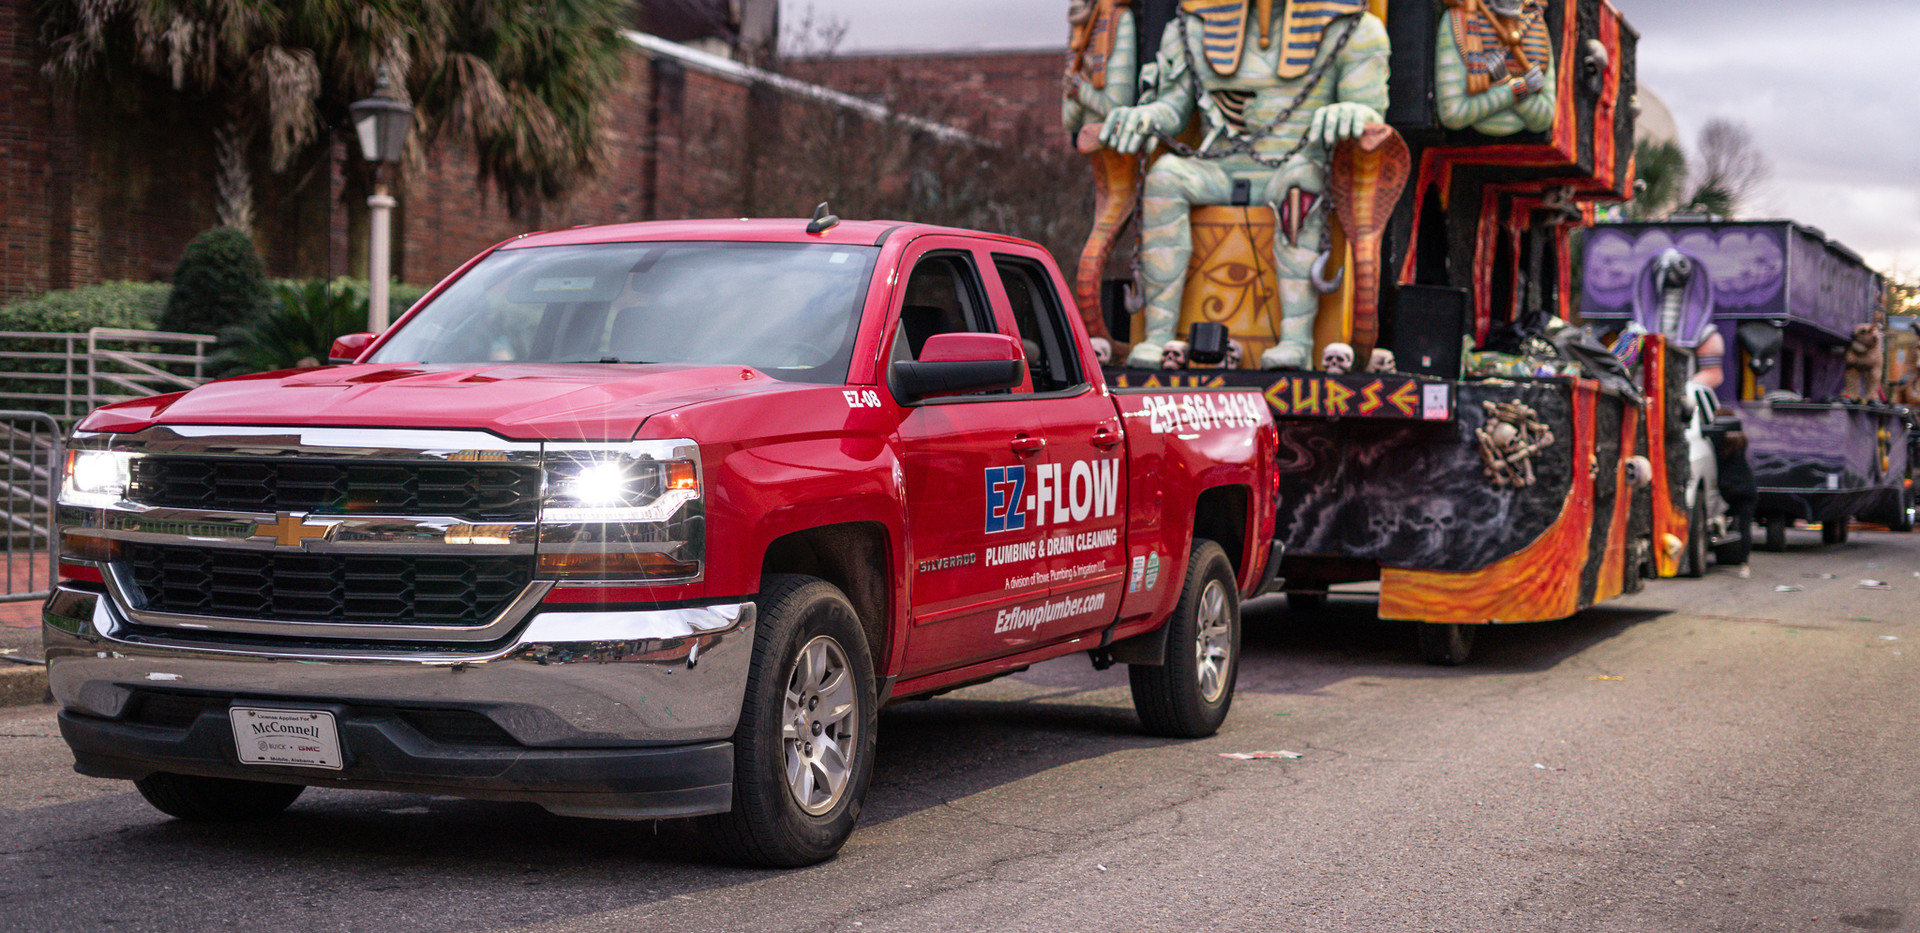 EZ- Flow PLumbing & Drain Cleaning Mardi Gras Parade in Down Town Mobile Alabama